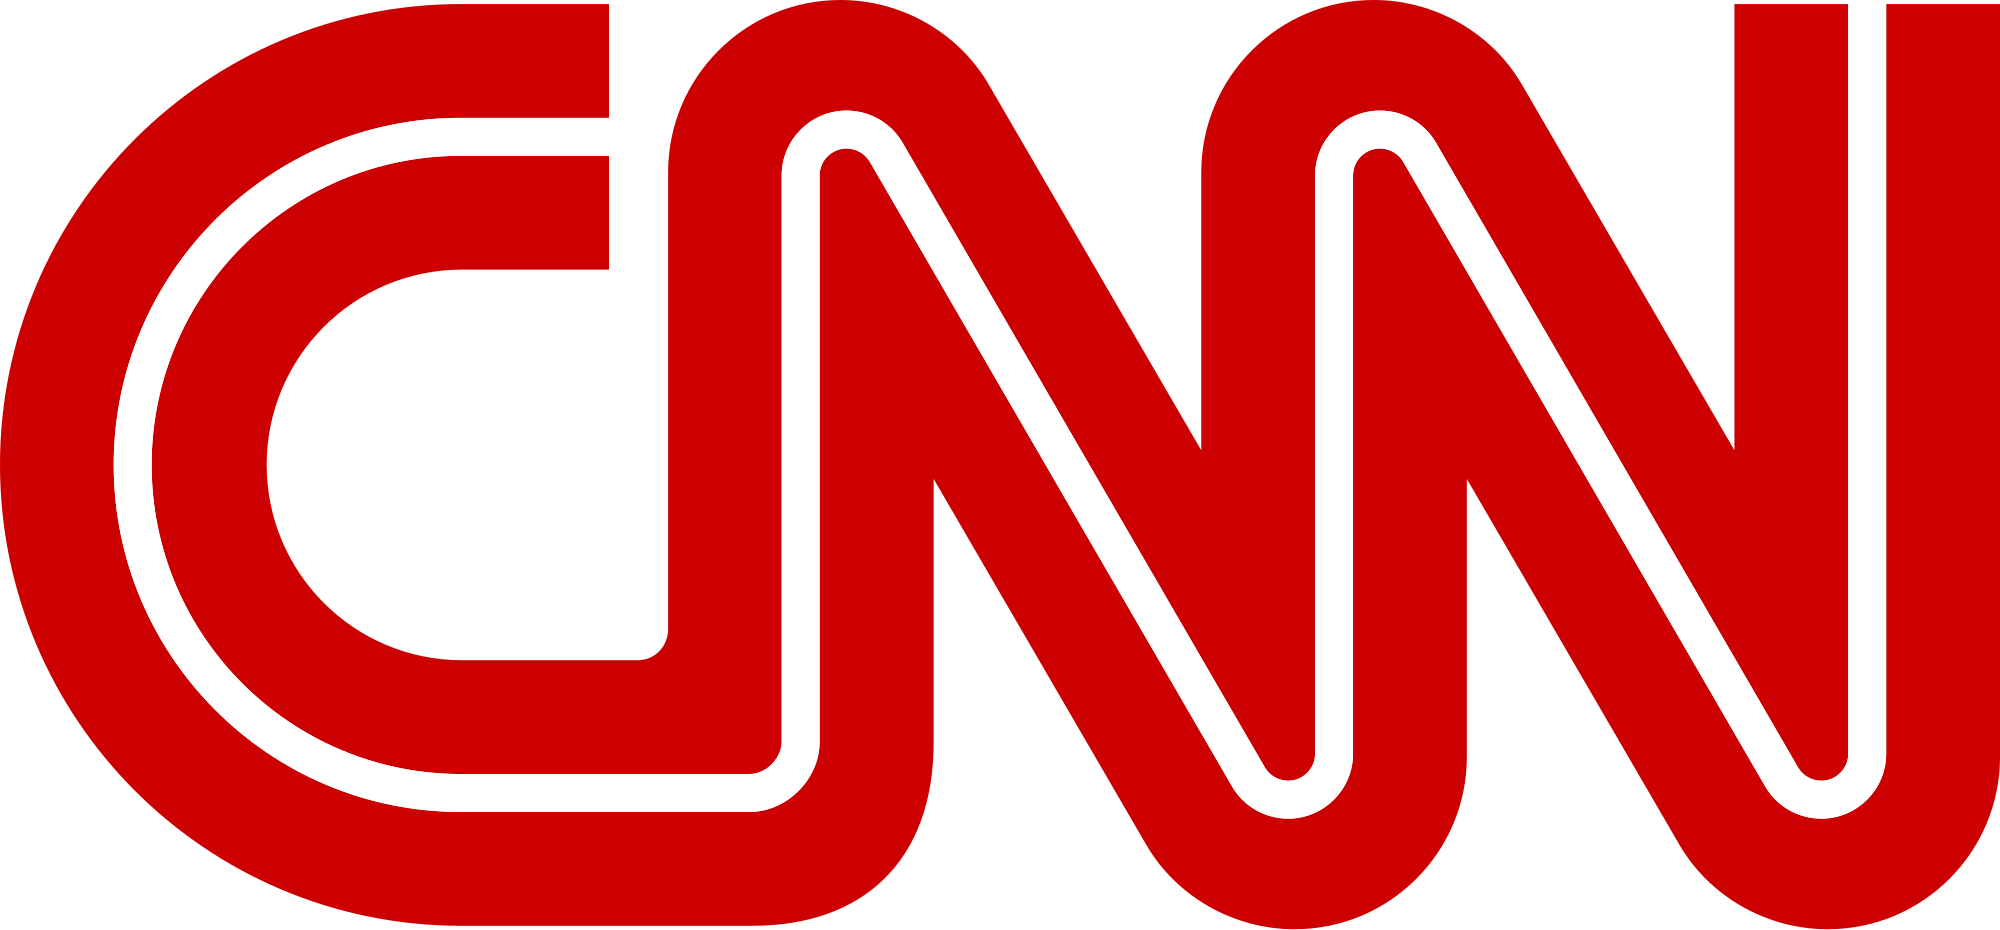 CNN Logo - File:CNN.svg - Wikimedia Commons